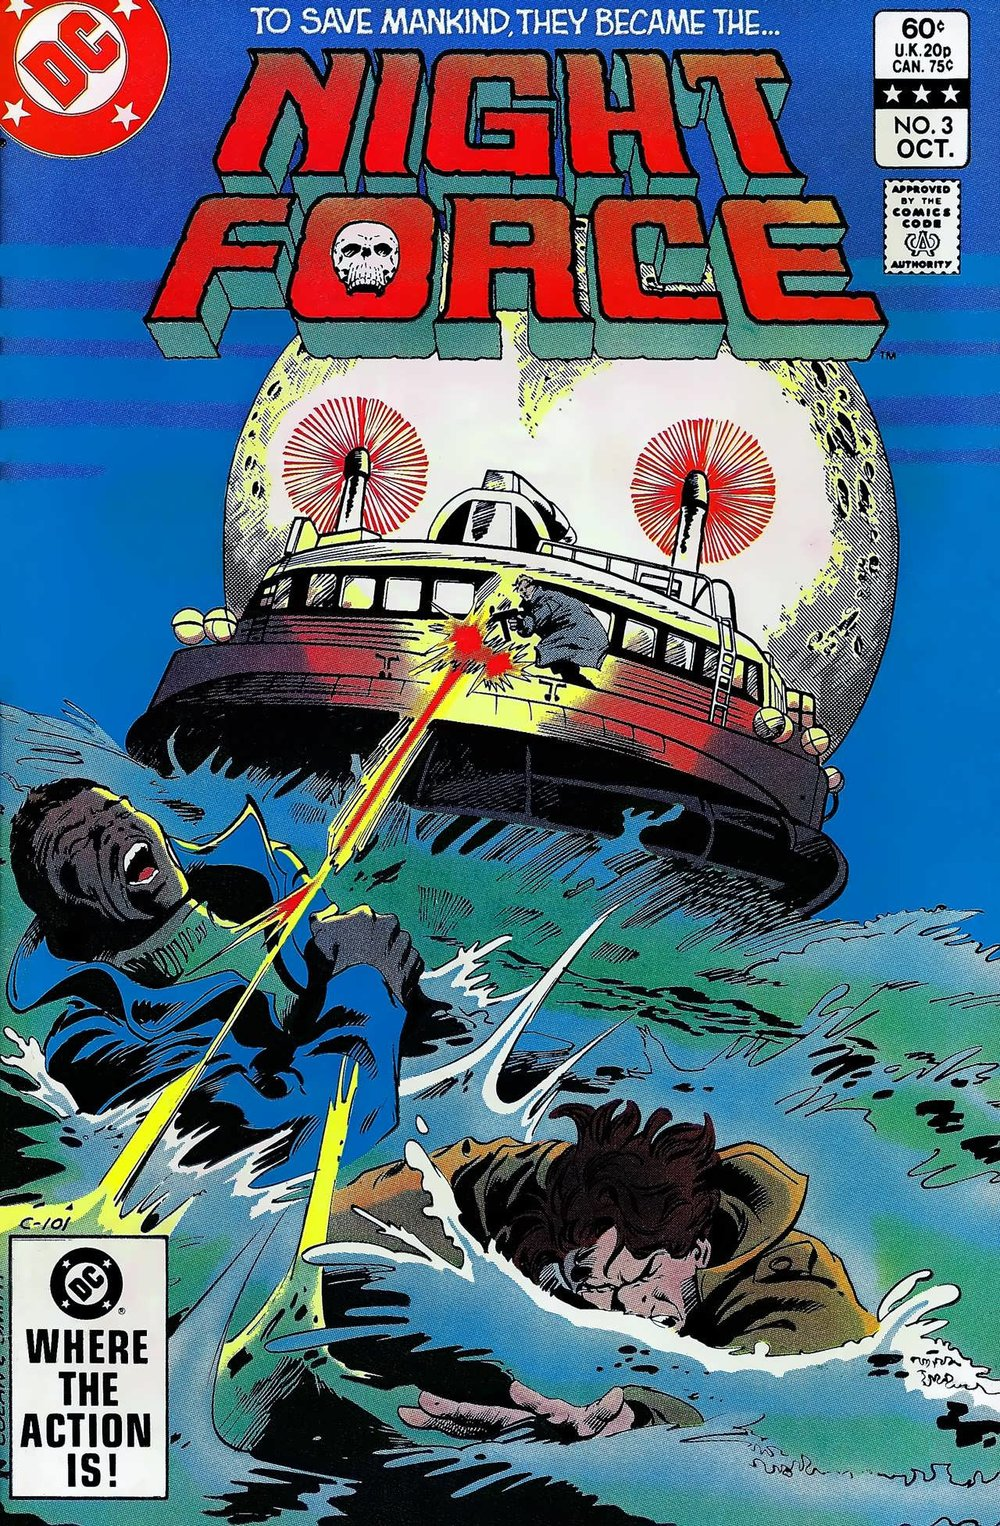 Night Force (1982) #3, cover penciled by Gene Colan & inked by Bob Smith.